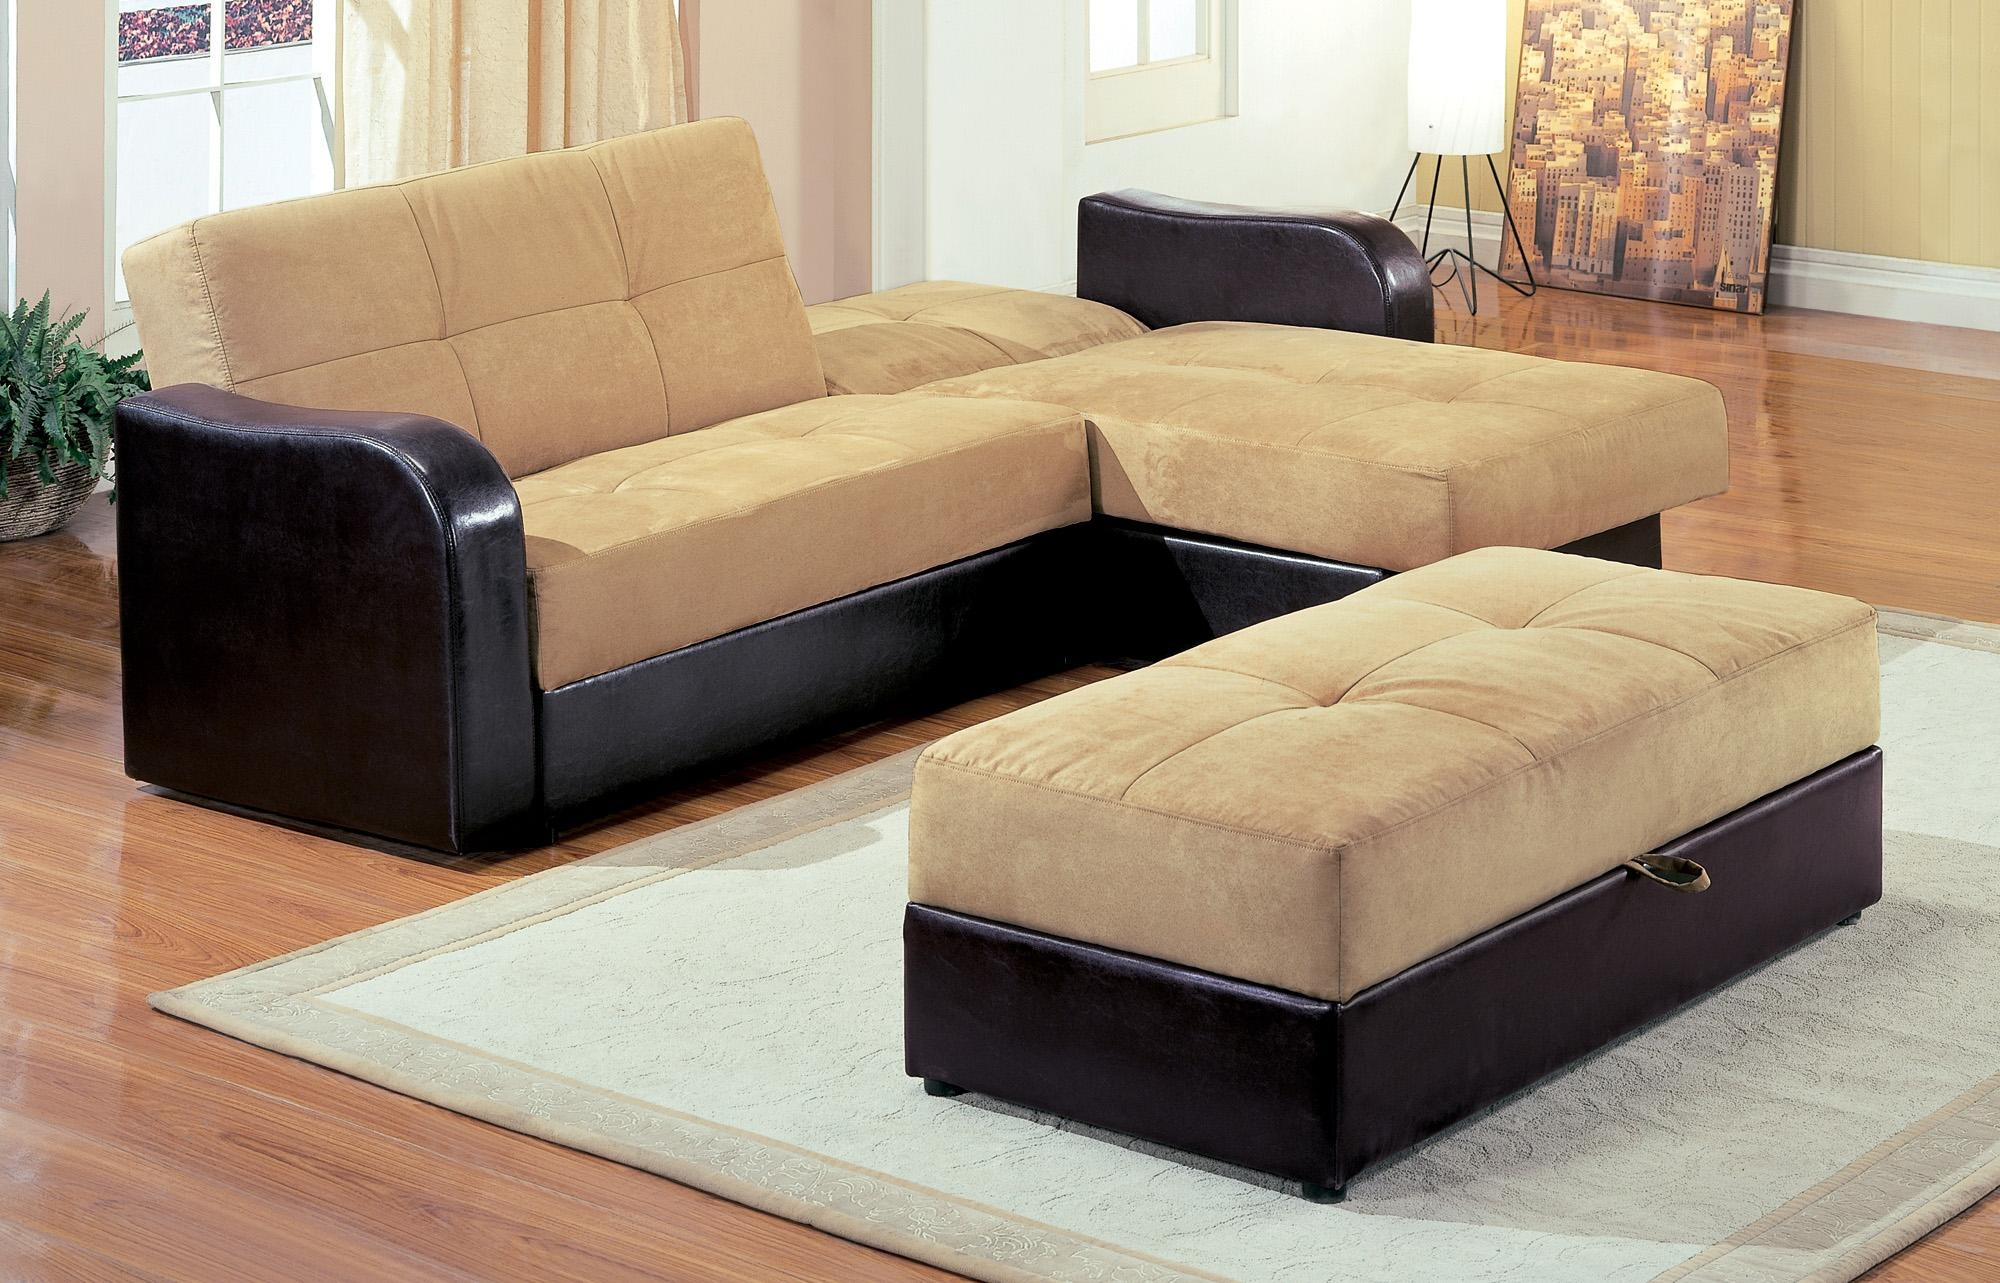 Sofa: Sectional With Chaise | Tufted Couch | Cool Couches Regarding Tufted Sectional With Chaise (Image 16 of 20)